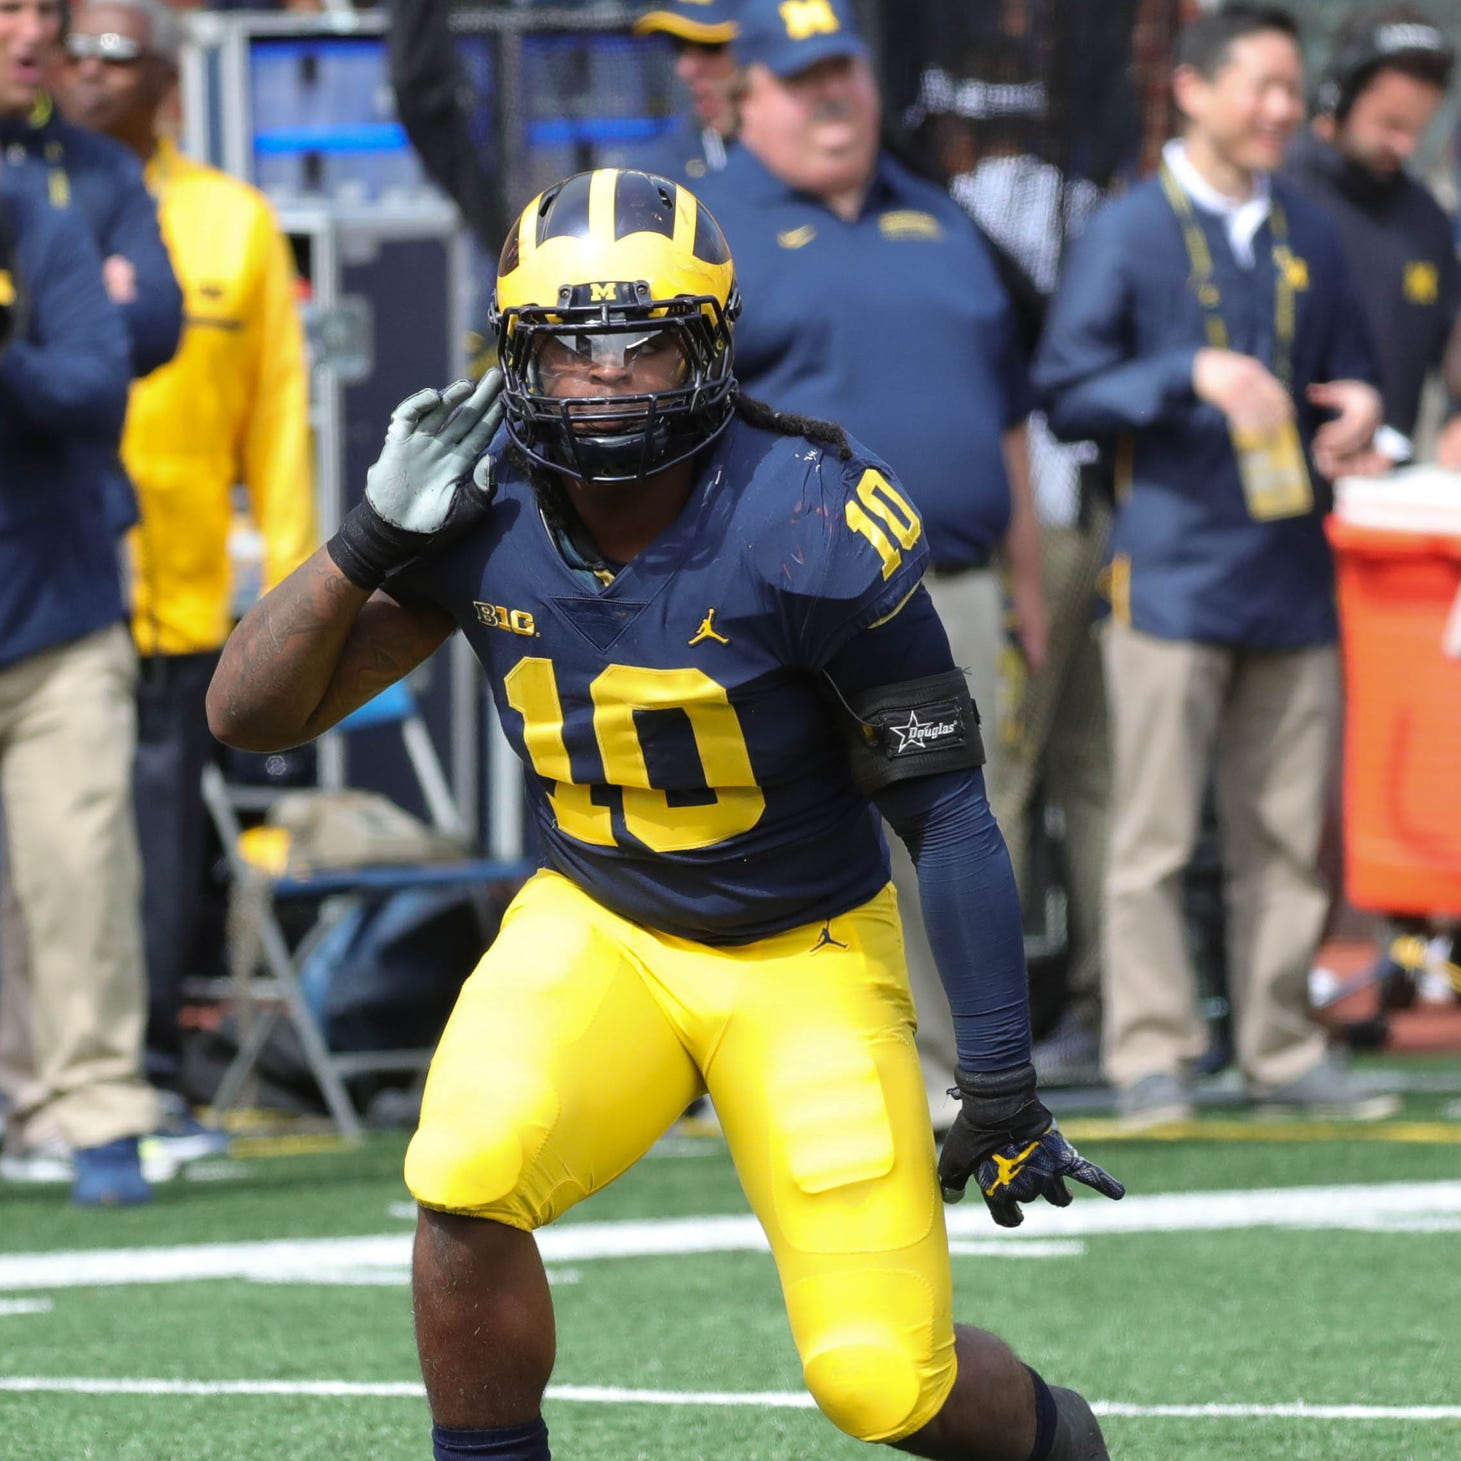 Michigan football's Devin Bush Jr. a consensus All-American